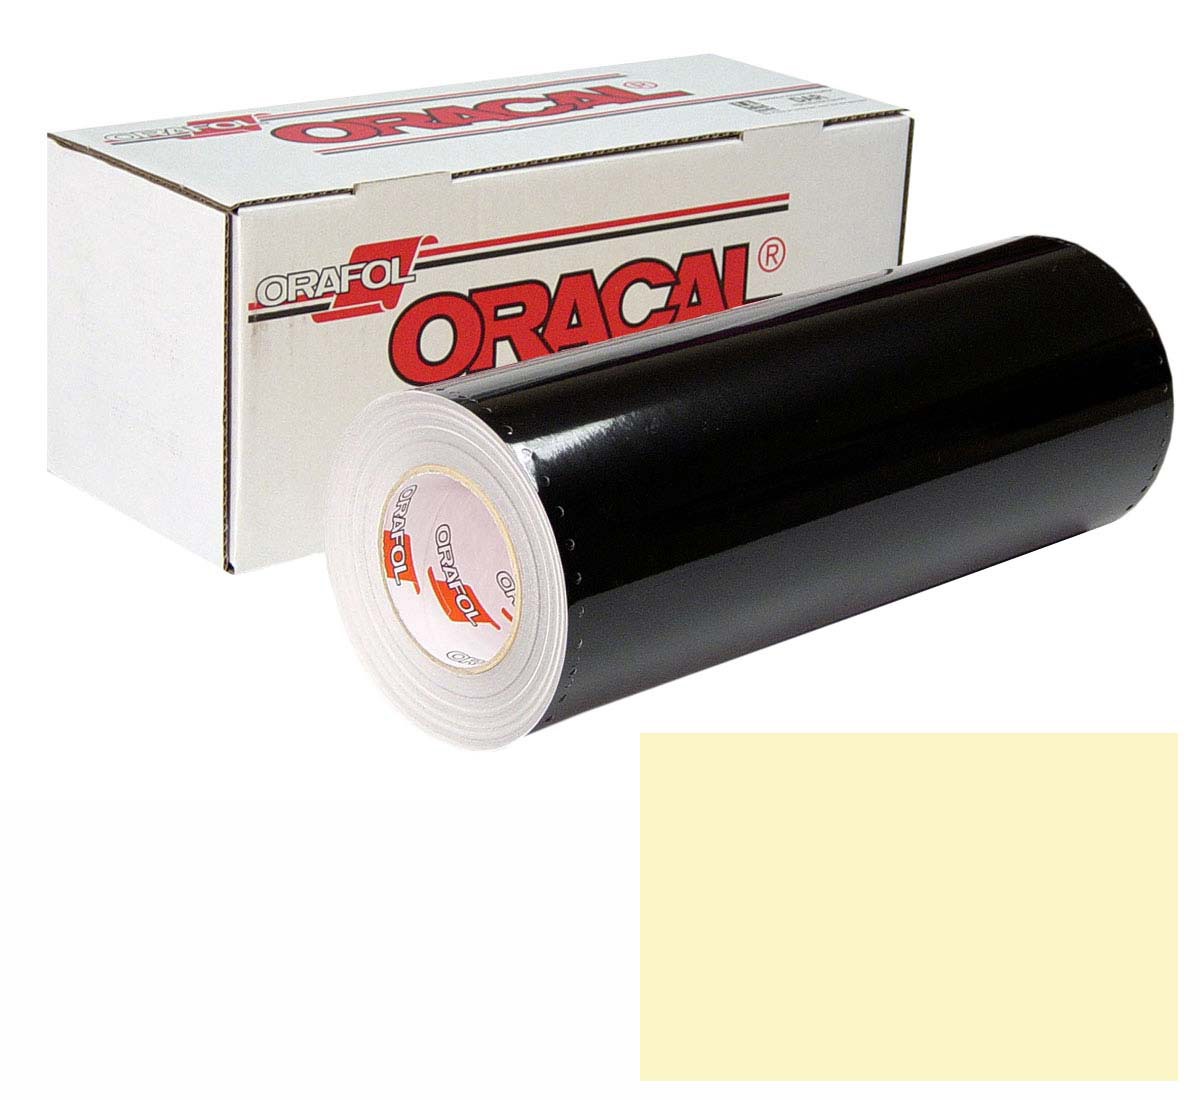 ORACAL 641 Unp 48in X 50yd 023 Cream